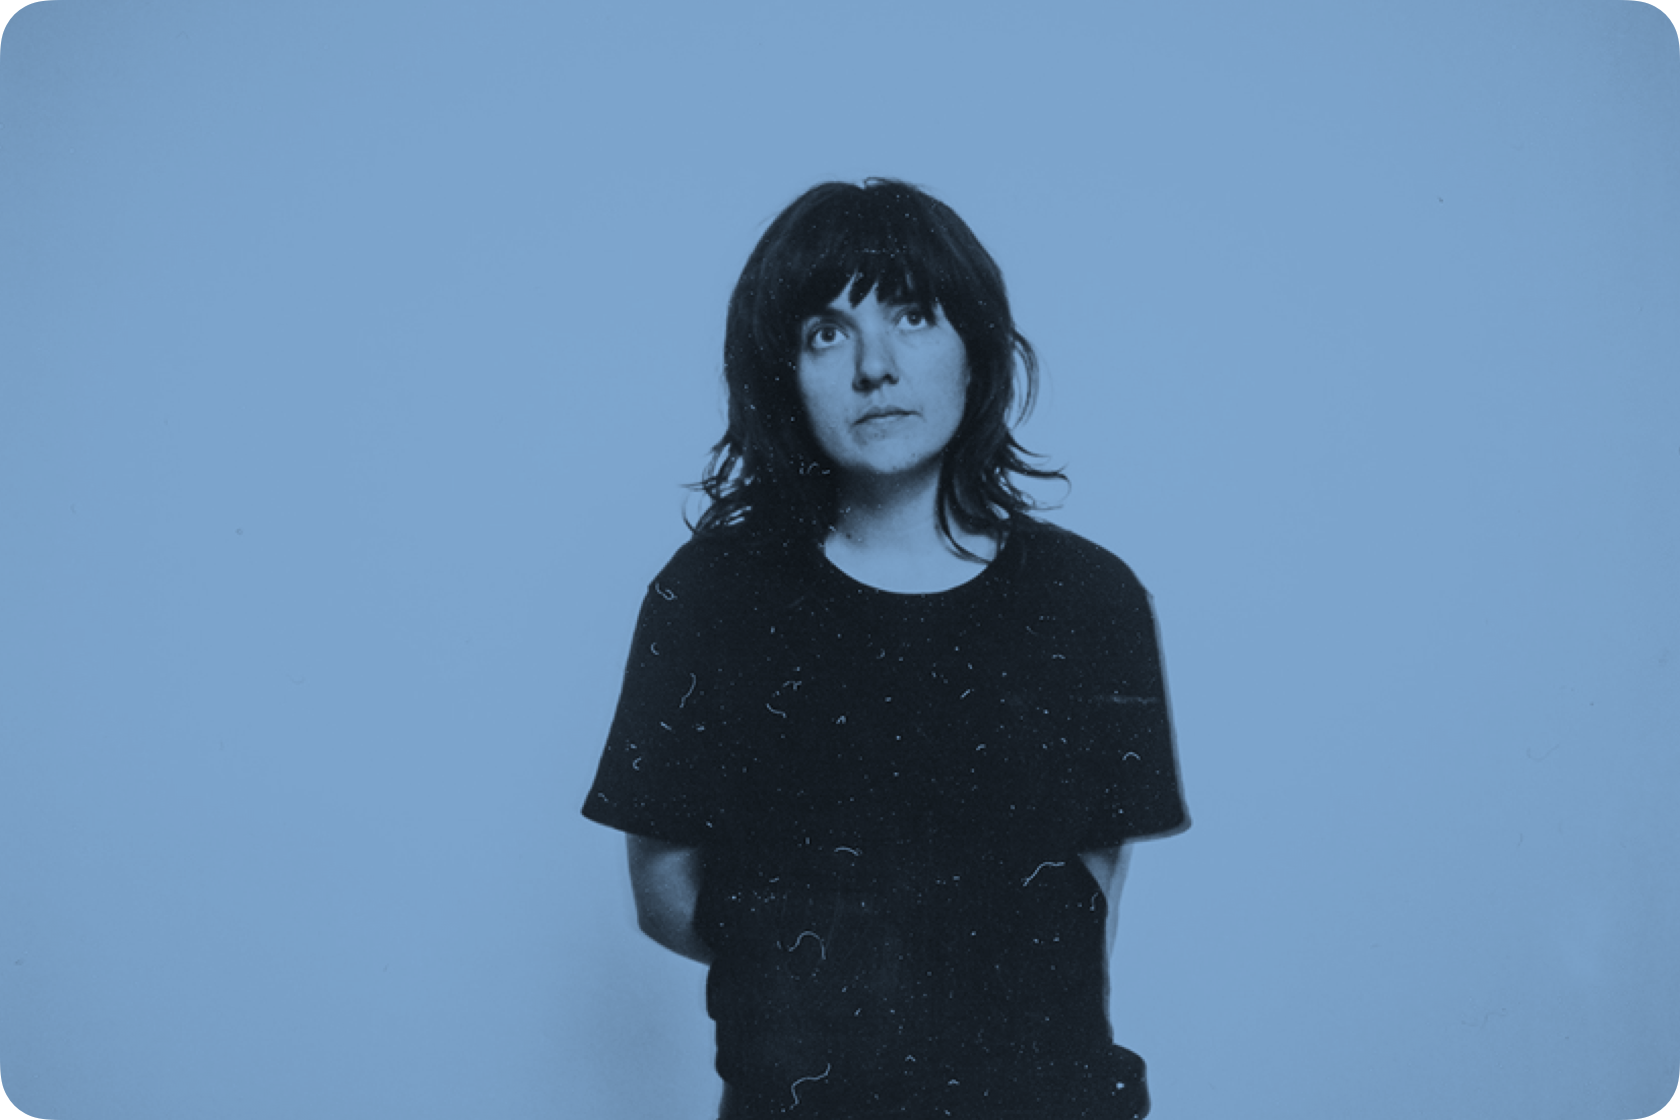 Singer Courtney Barnett looking upwards with her arms behind her back